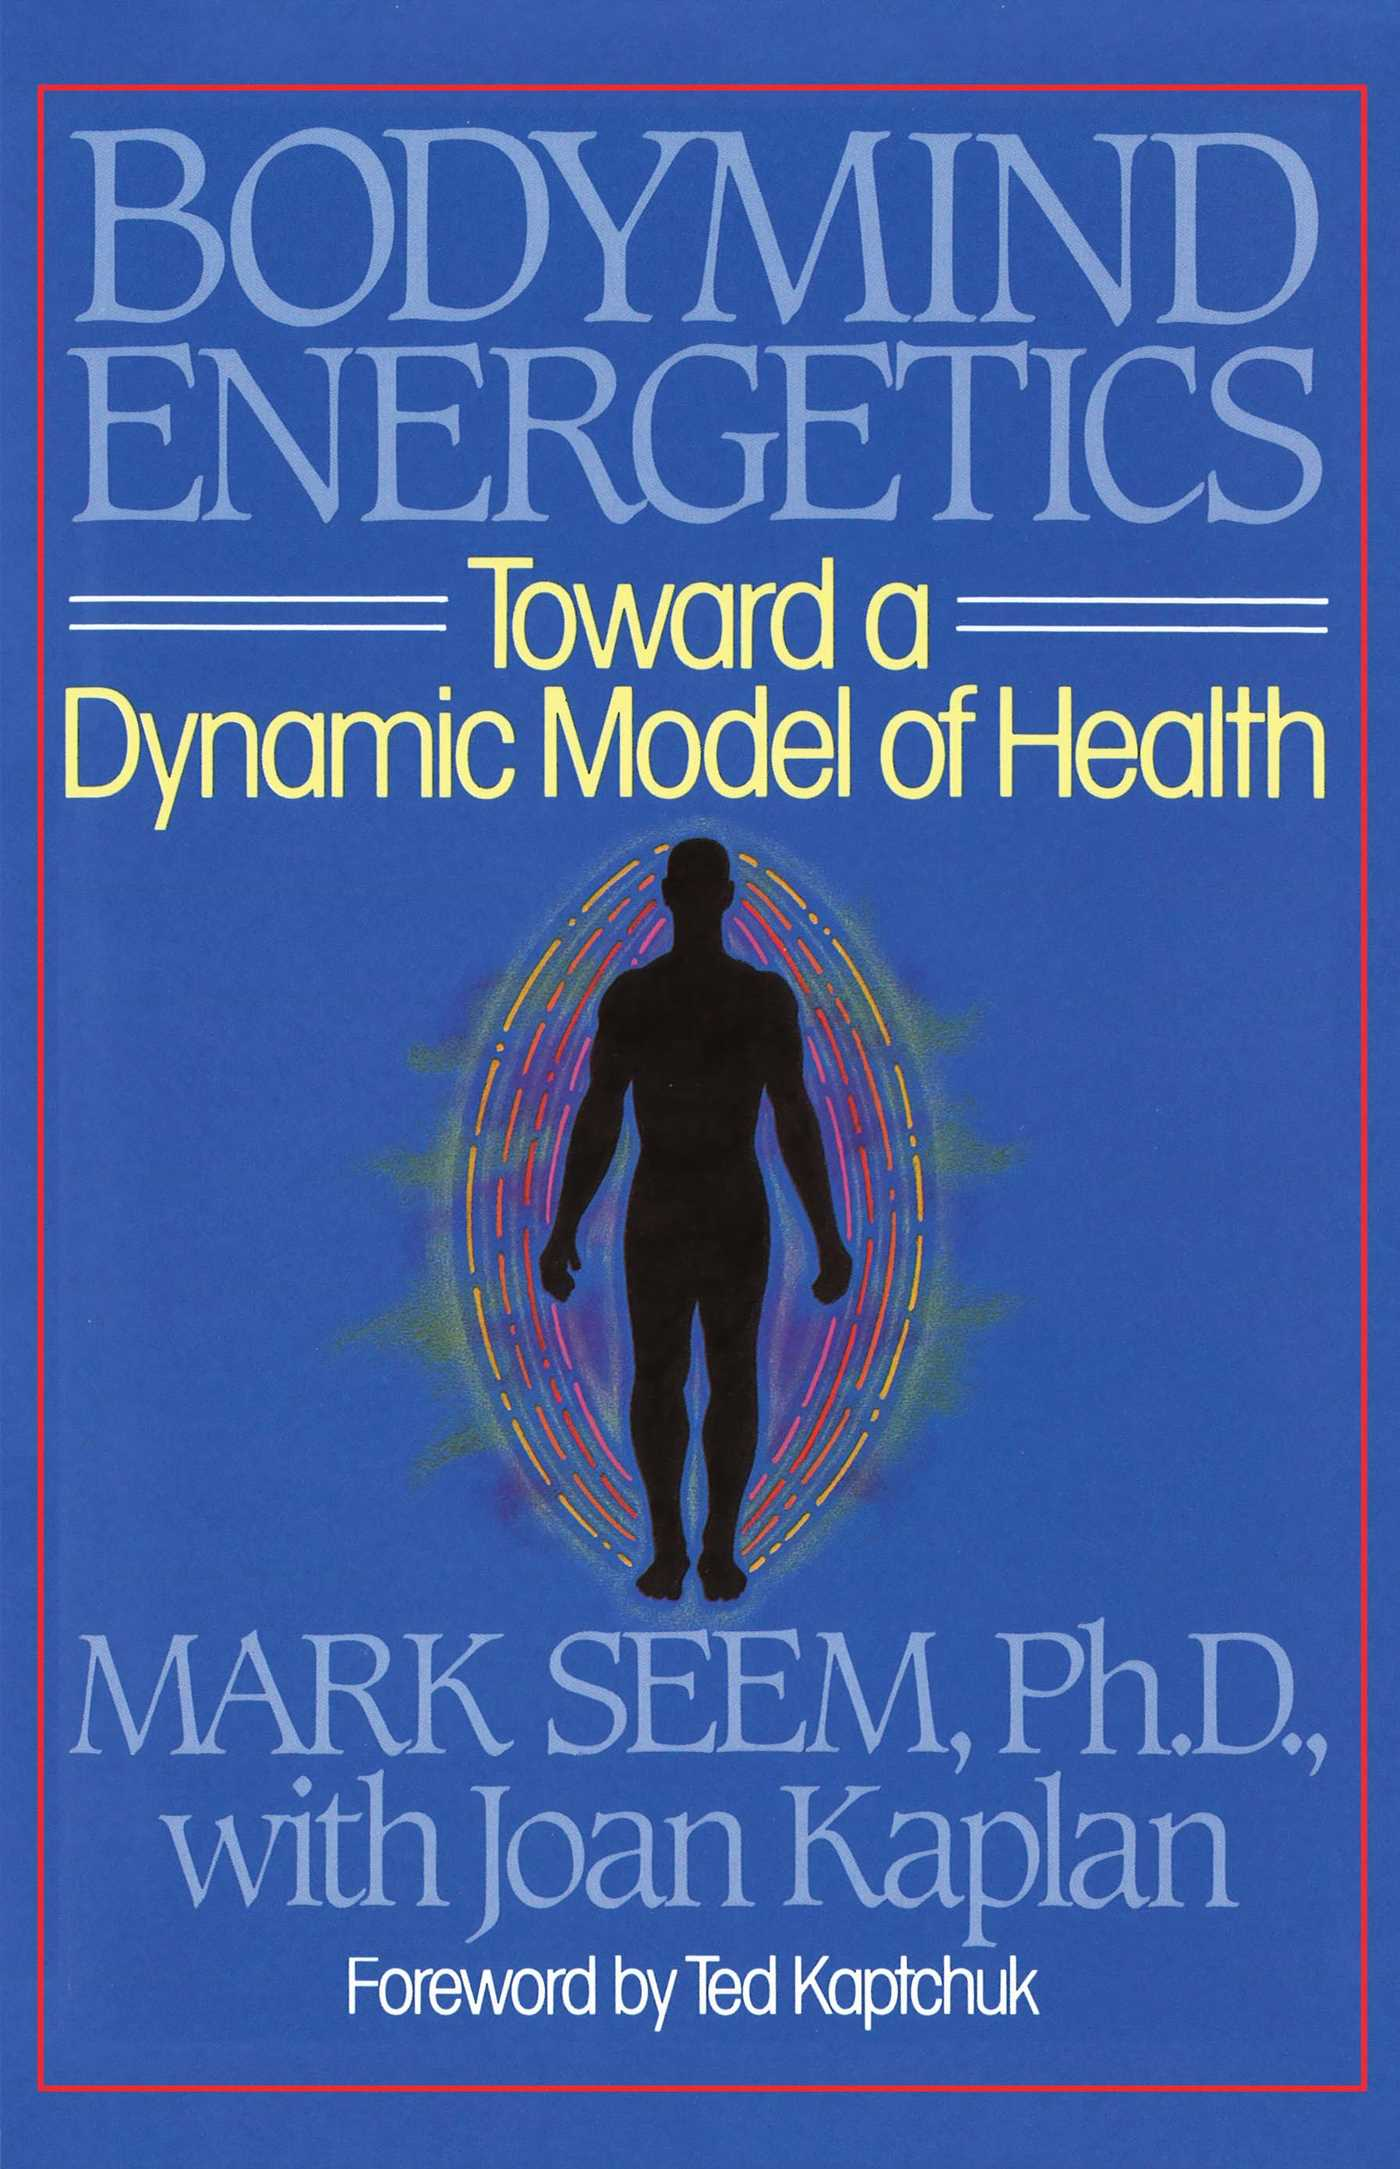 Bodymind-energetics-9780892812462_hr